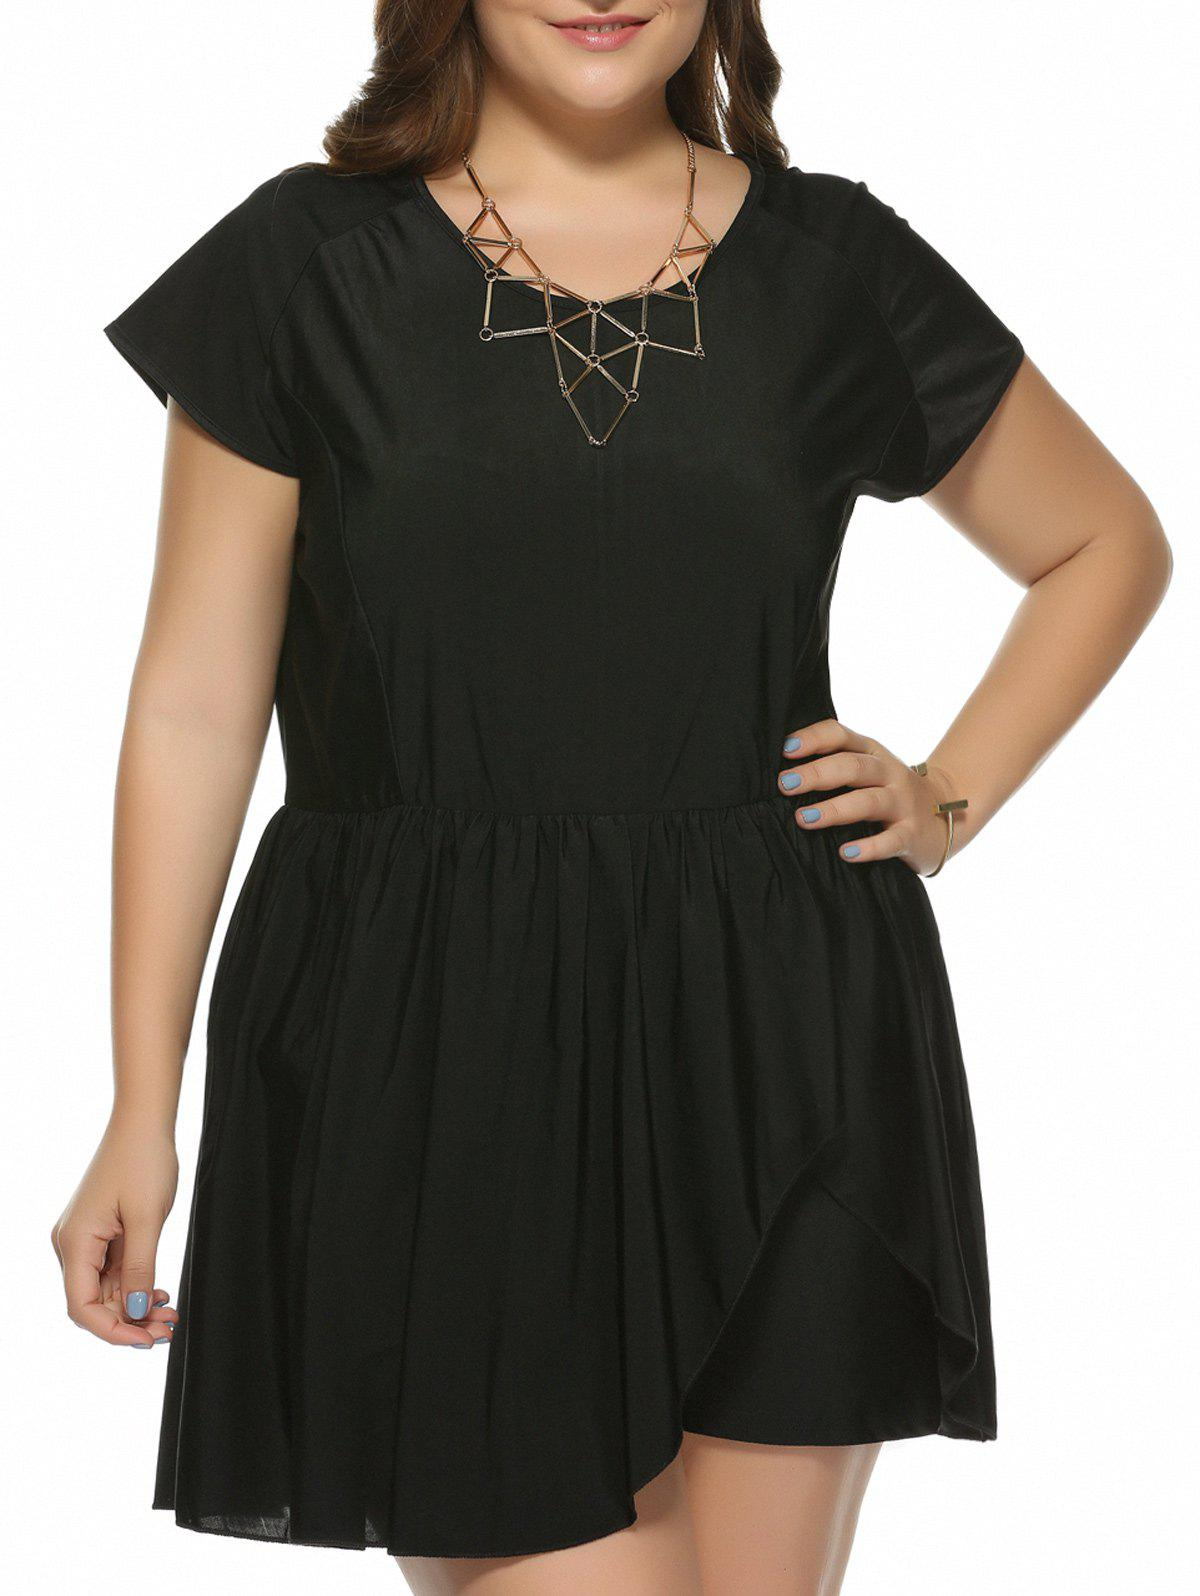 Plus Size Scoop Neck Short Sleeve Romper - BLACK 3XL